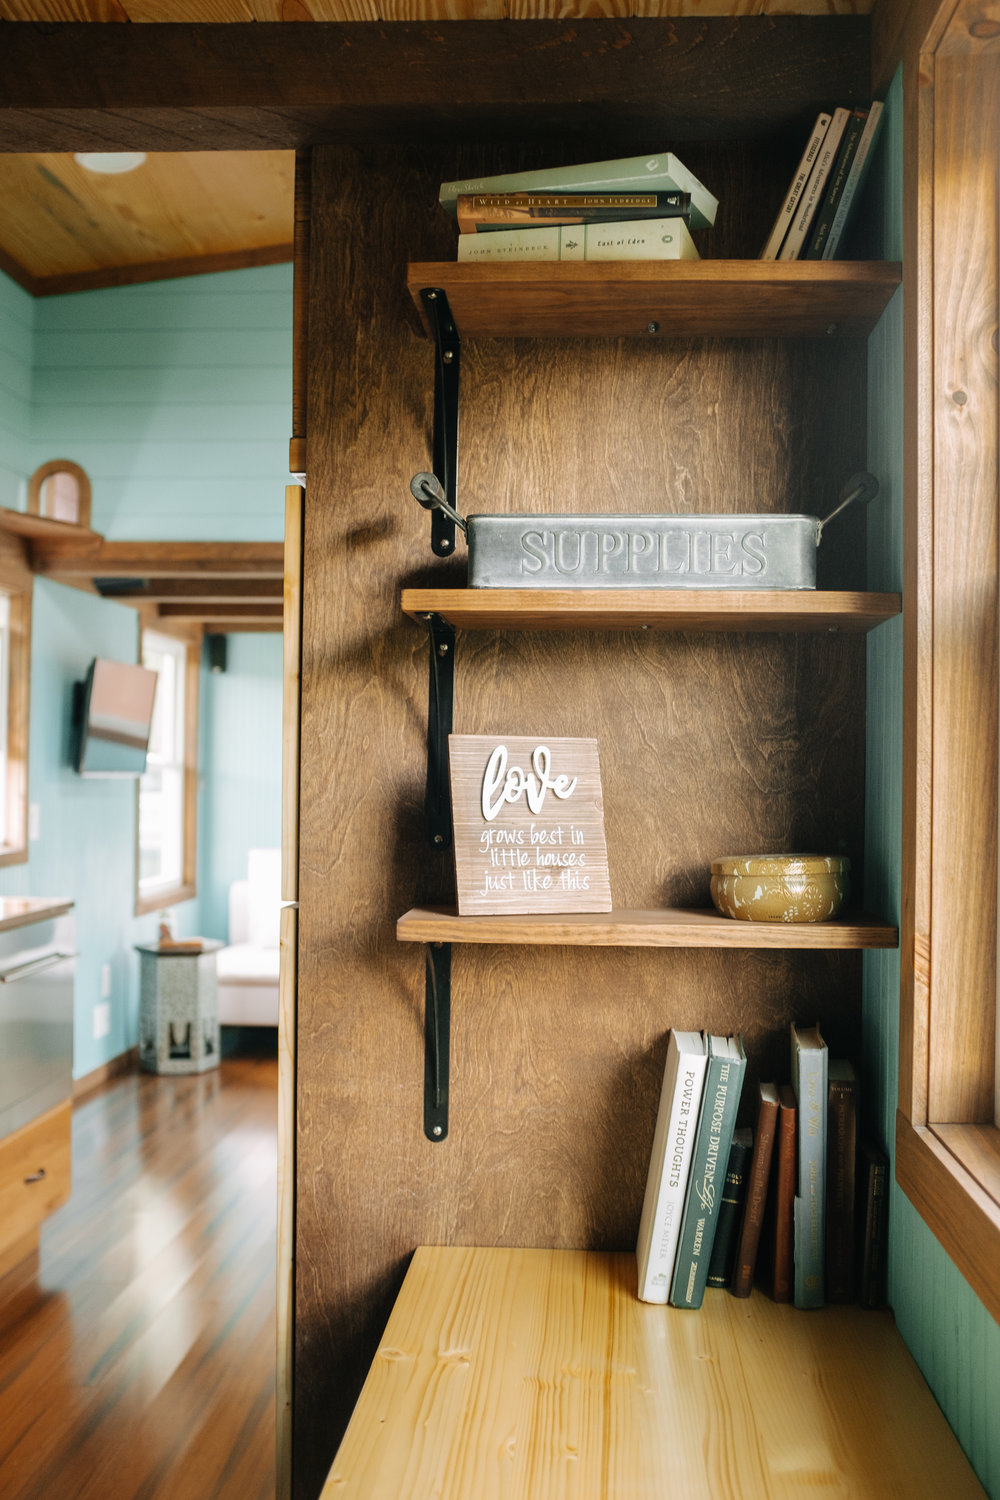 The Big Whimsy by Wind River Tiny Homes - built in desk space, open shelving, LED lighting